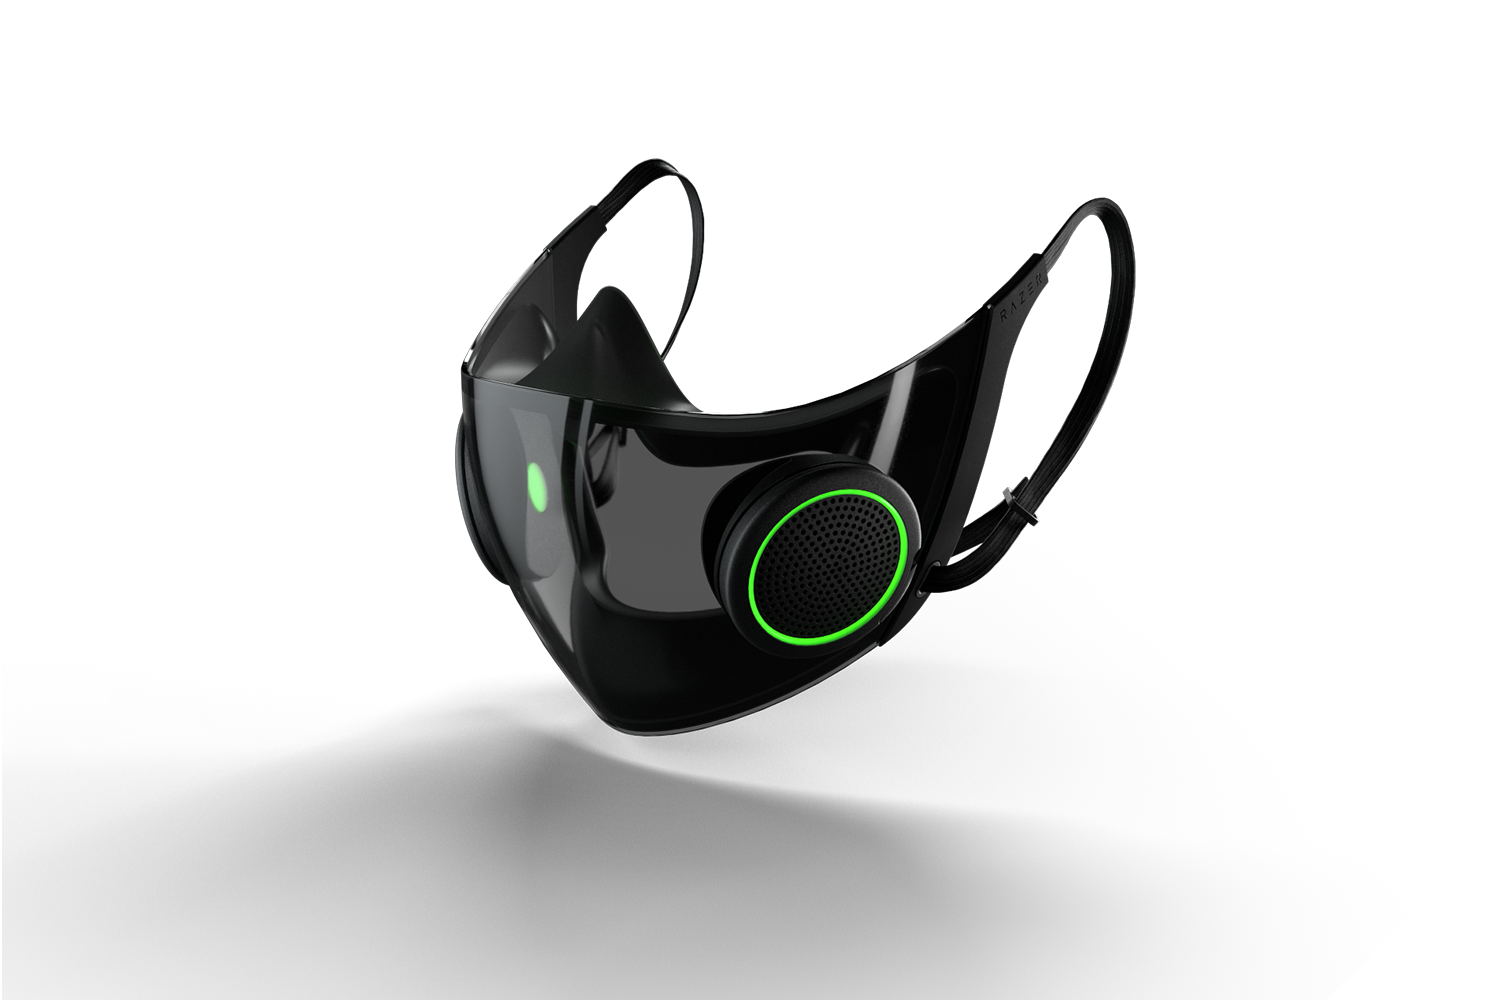 Razer says this is the world's smartest mask